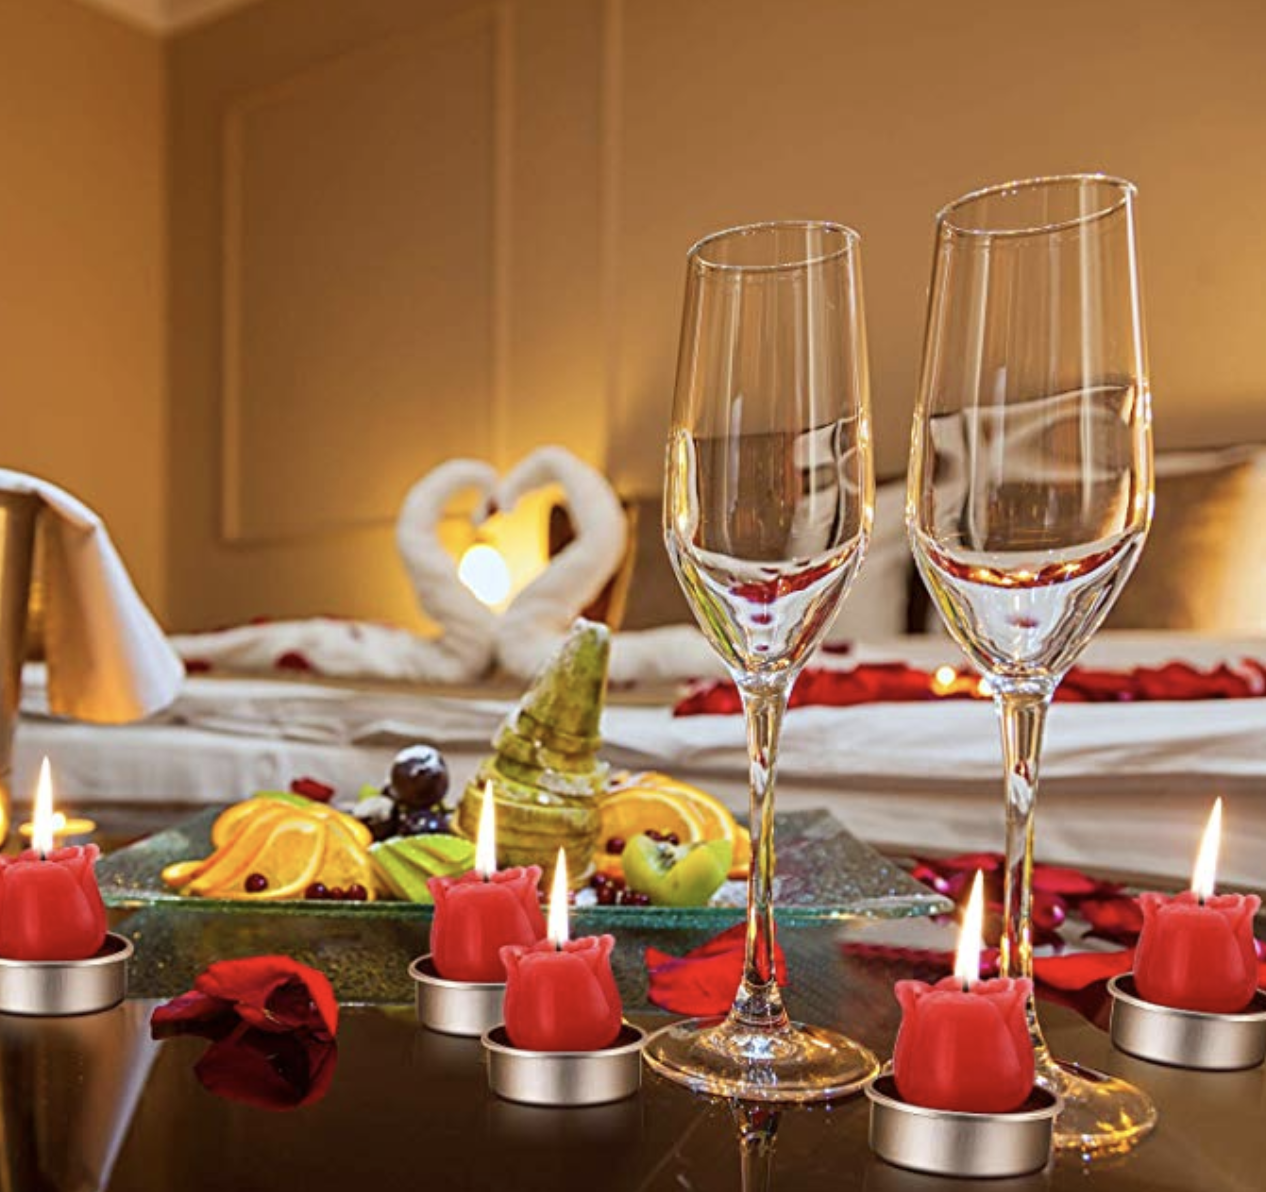 9 Seriously Romantic Products To Get If You Re Having Date Night At Home